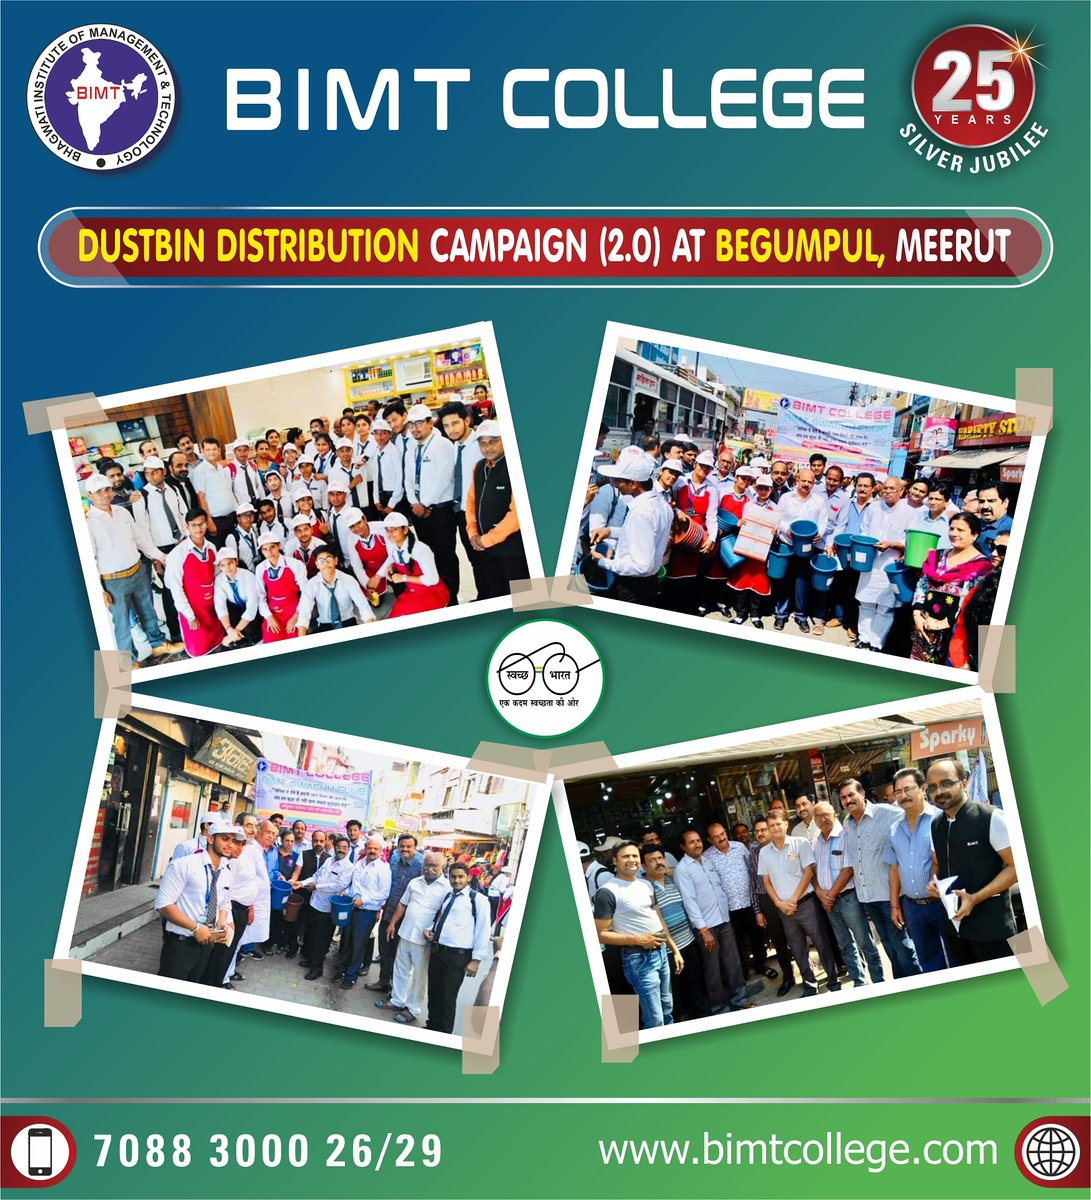 """⭐️Dustbin Distribution Campaign (2.0)⭐️ by BIMT Swachh Club Volunteers to all Shopkeepers at Begumpul Market  , Meerut for promoting """"SWACHH BHARAT ABHIYAN""""   Learn more: 🌍 https://t.co/owD9d6dtws  #BIMTSwachhClub #SwacchBharatAbhiyan #BIMT #IT #College #Meerut #CCSU #AKTU #hap https://t.co/yQL9FCStN5"""